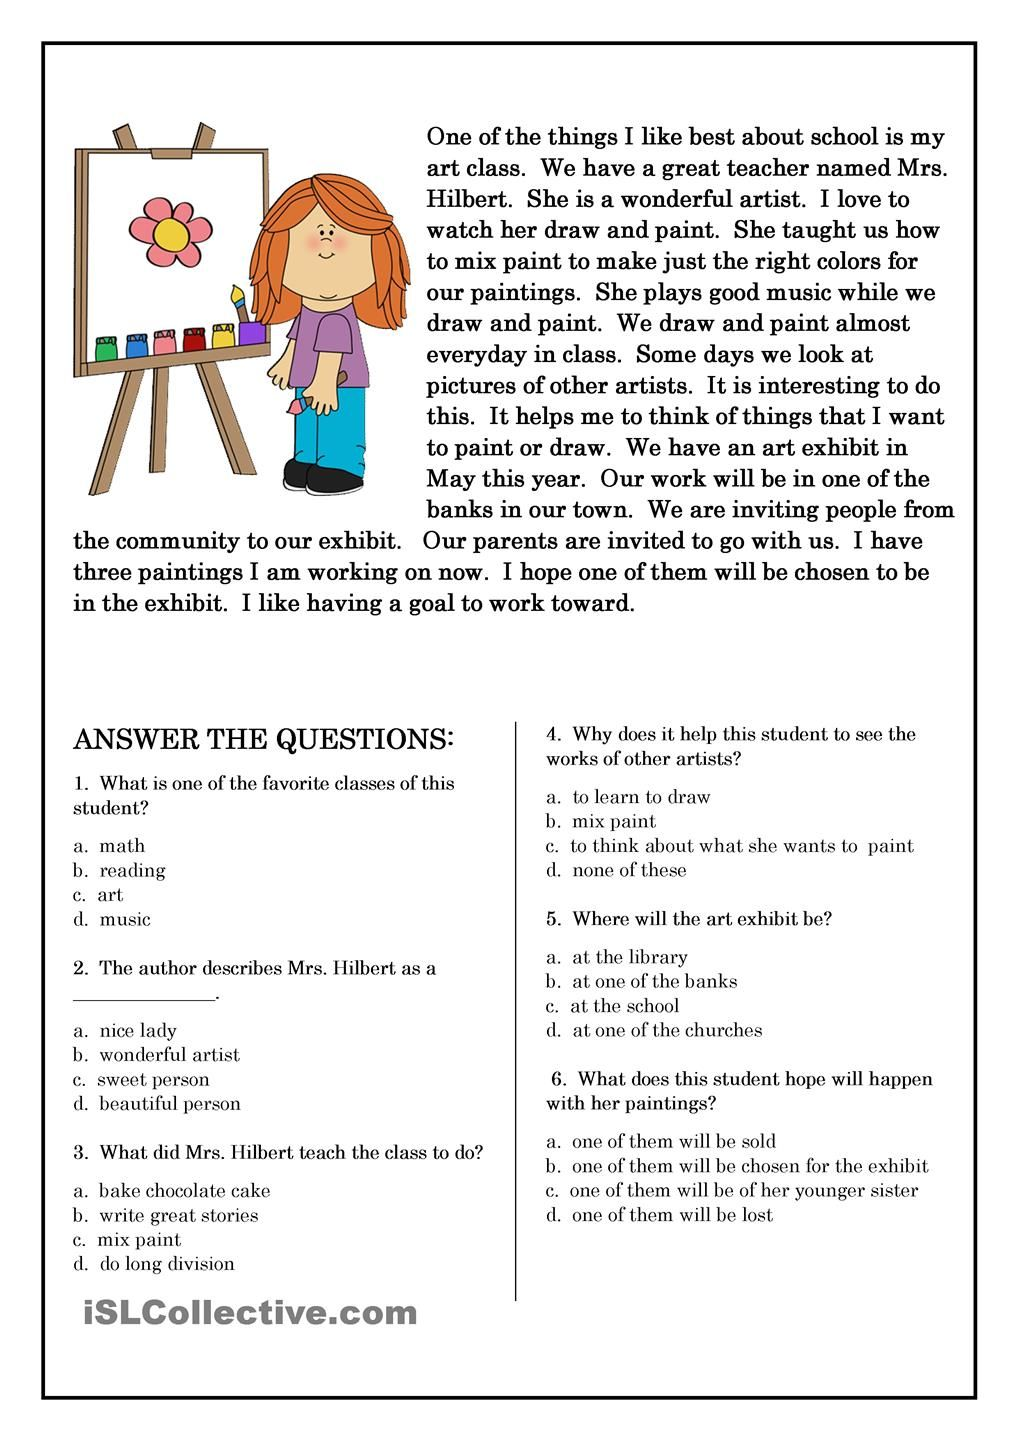 Worksheet Reading Comprehension Worksheets Year 3 1000 images about reading comprehension on pinterest and worksheets